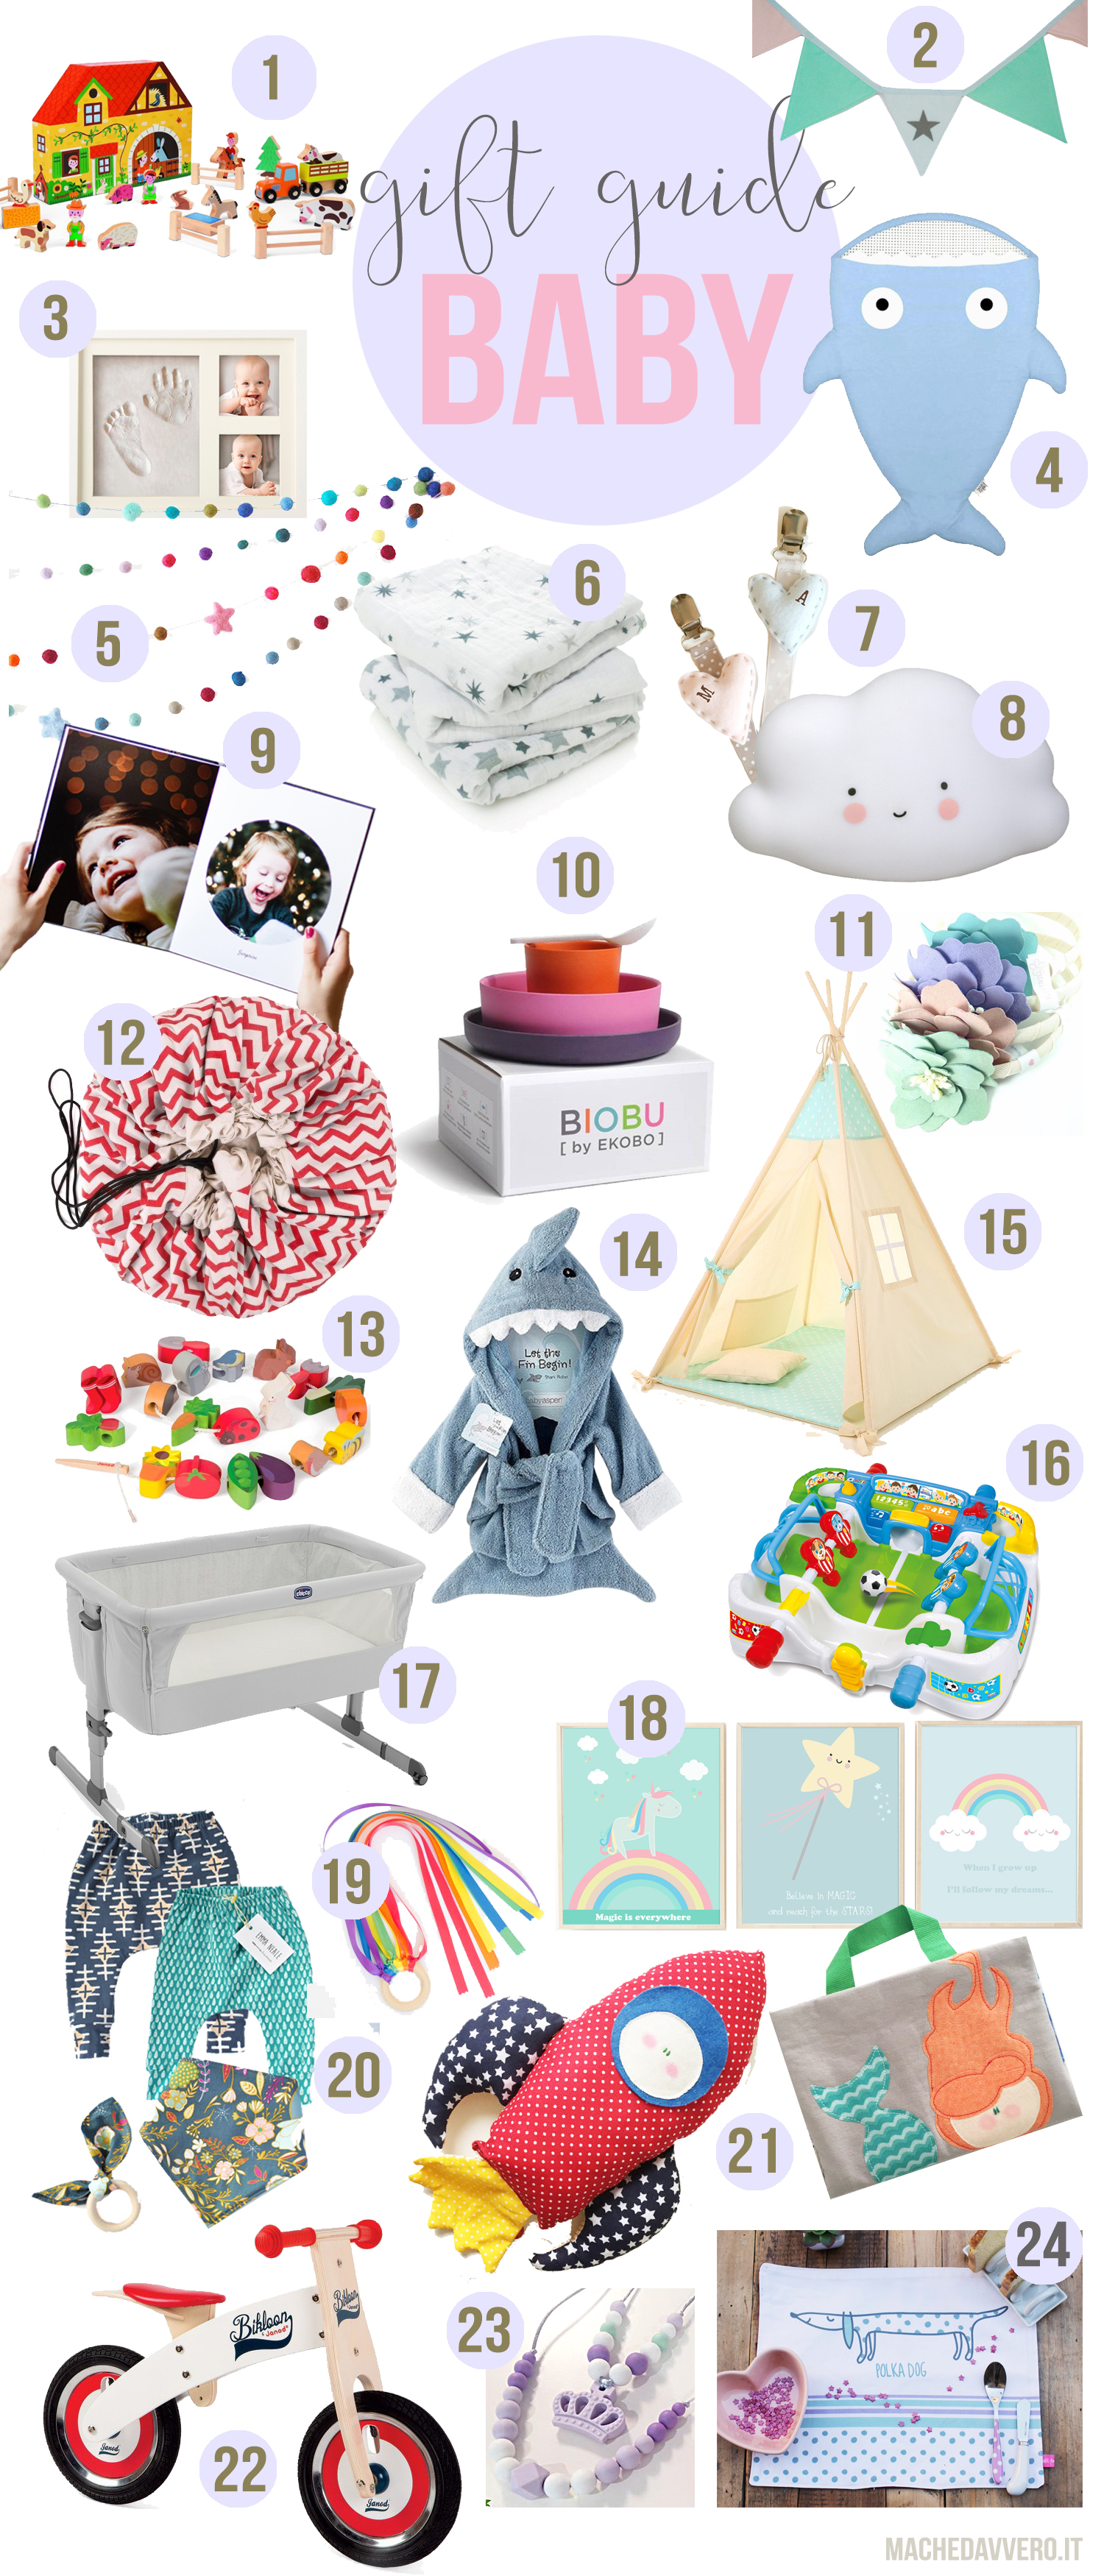 Idee regalo creative e originali per bimbi 0 3 anni con for Idee per piccoli regali